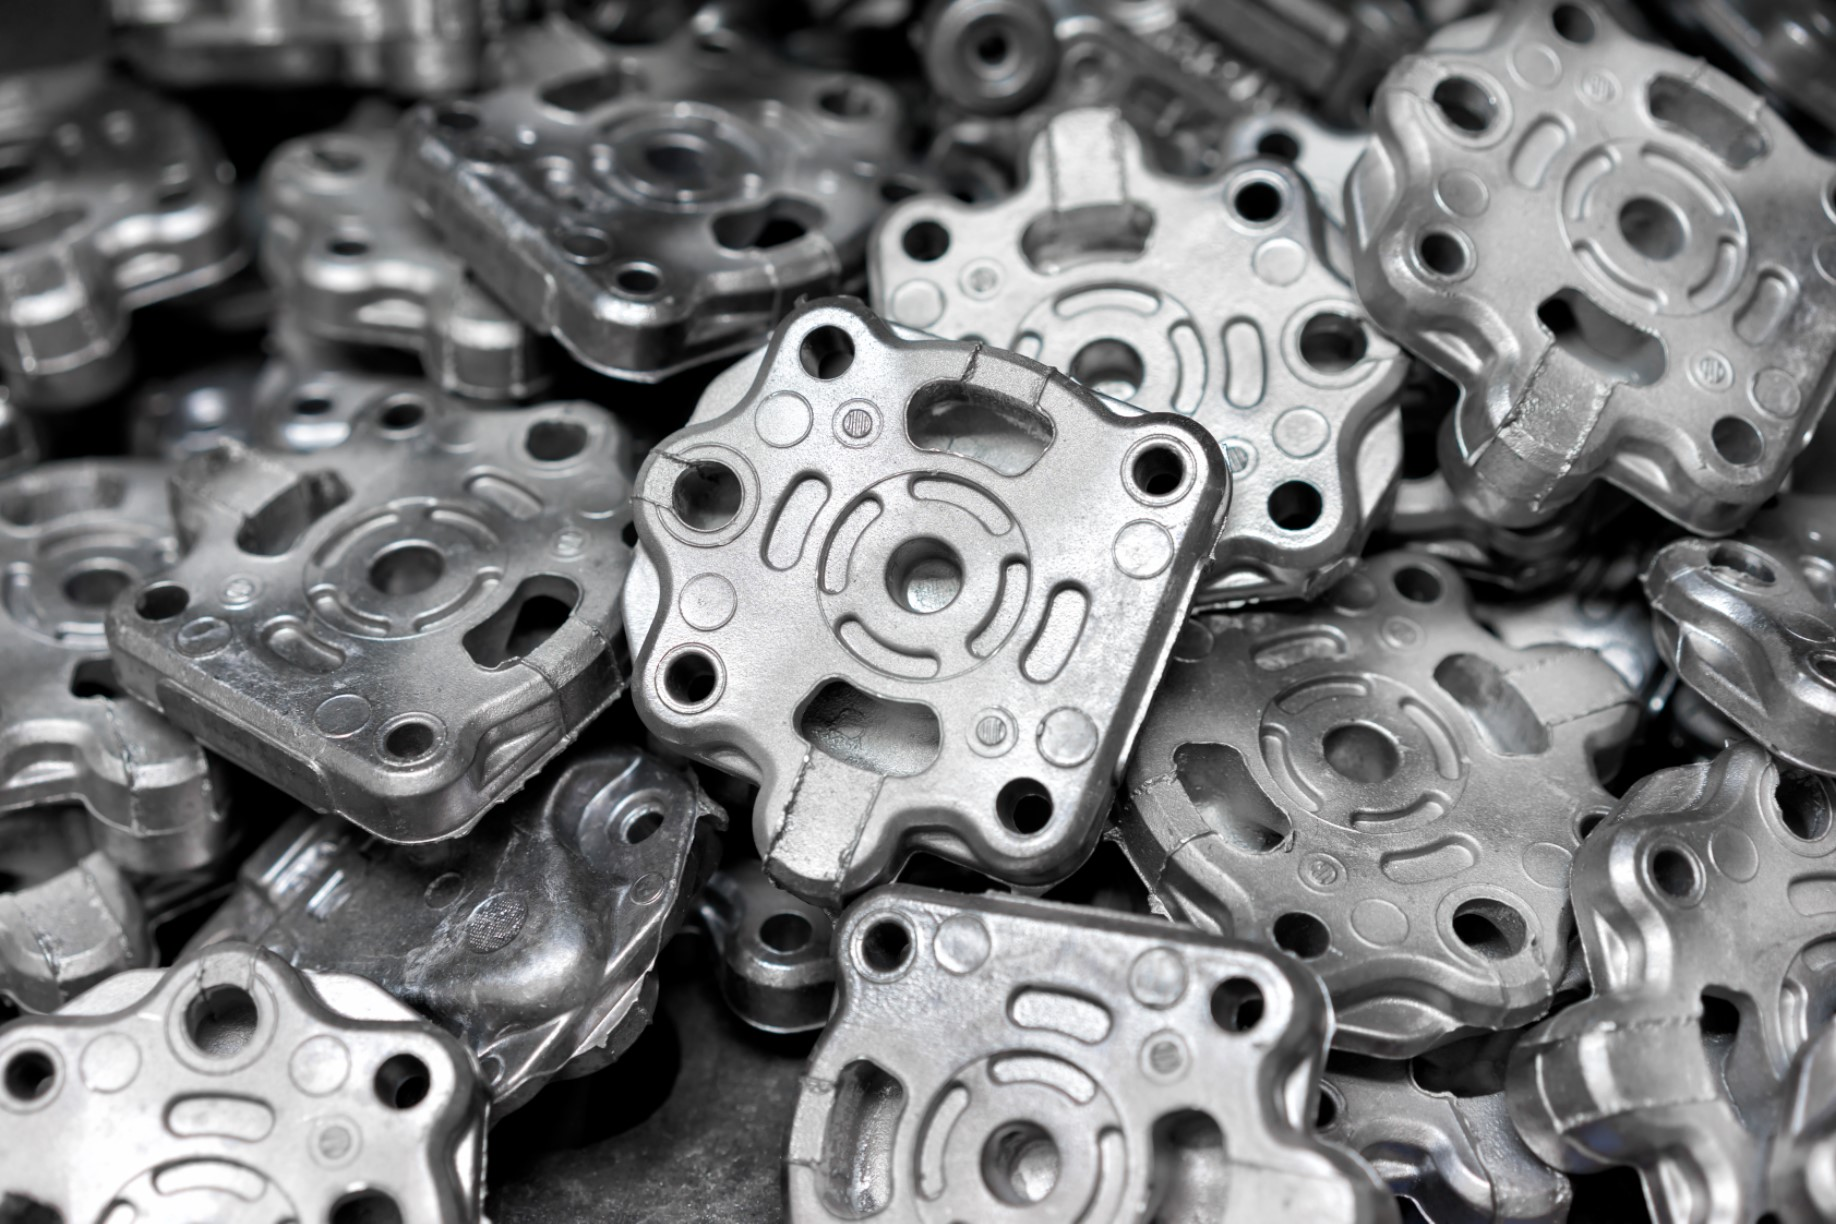 DC Pile Of Aluminum Automotive Parts, Casting Process In The Automotive Industry Factory